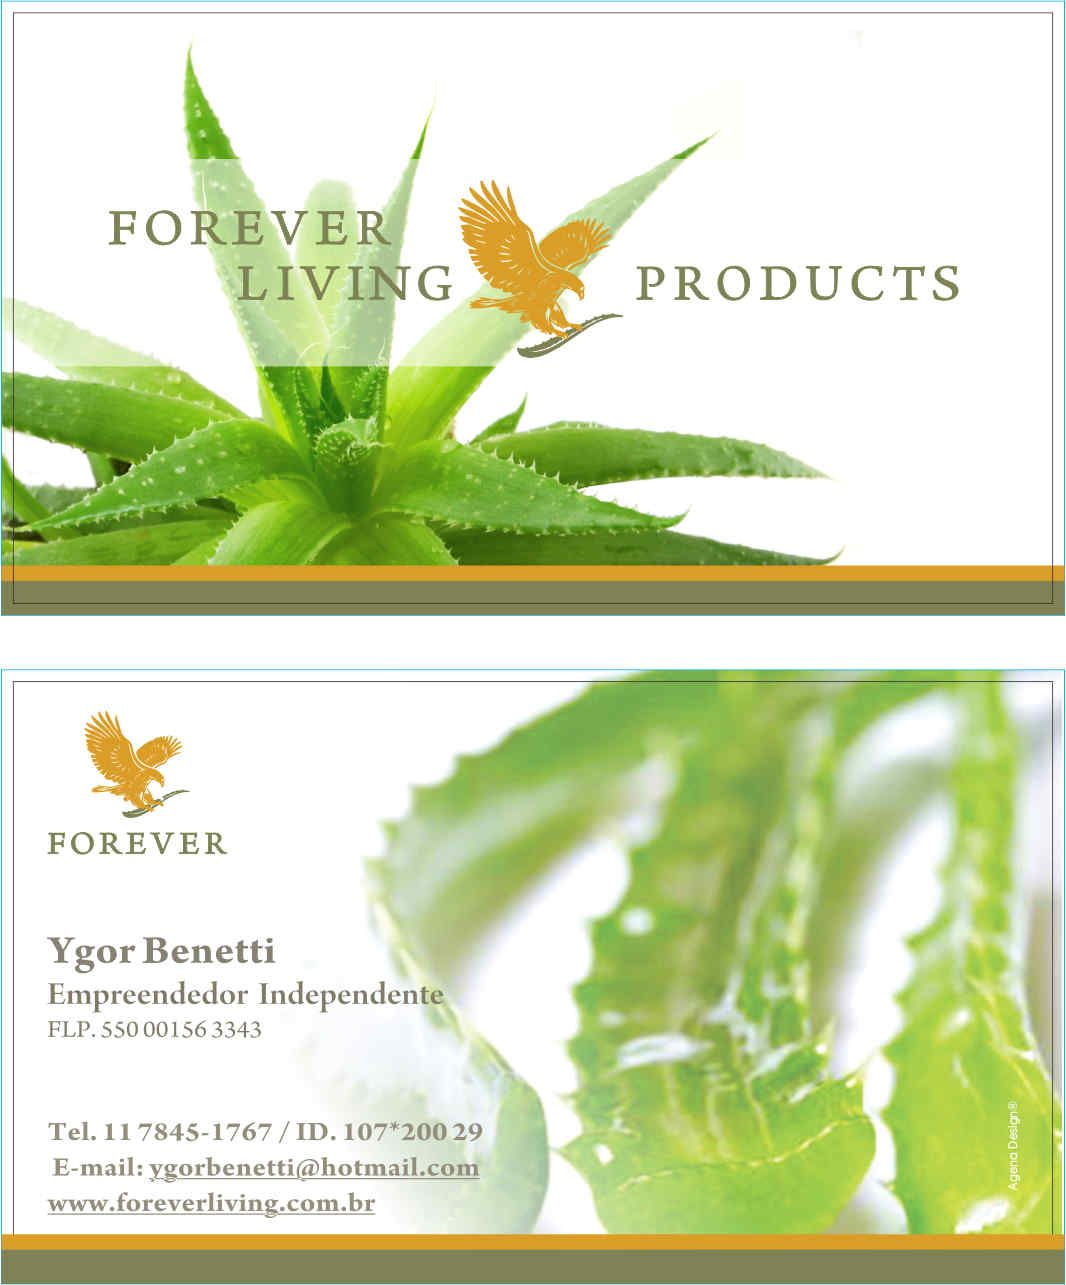 Forever Living Products - Cartão de Visita | Forever Living Products ...